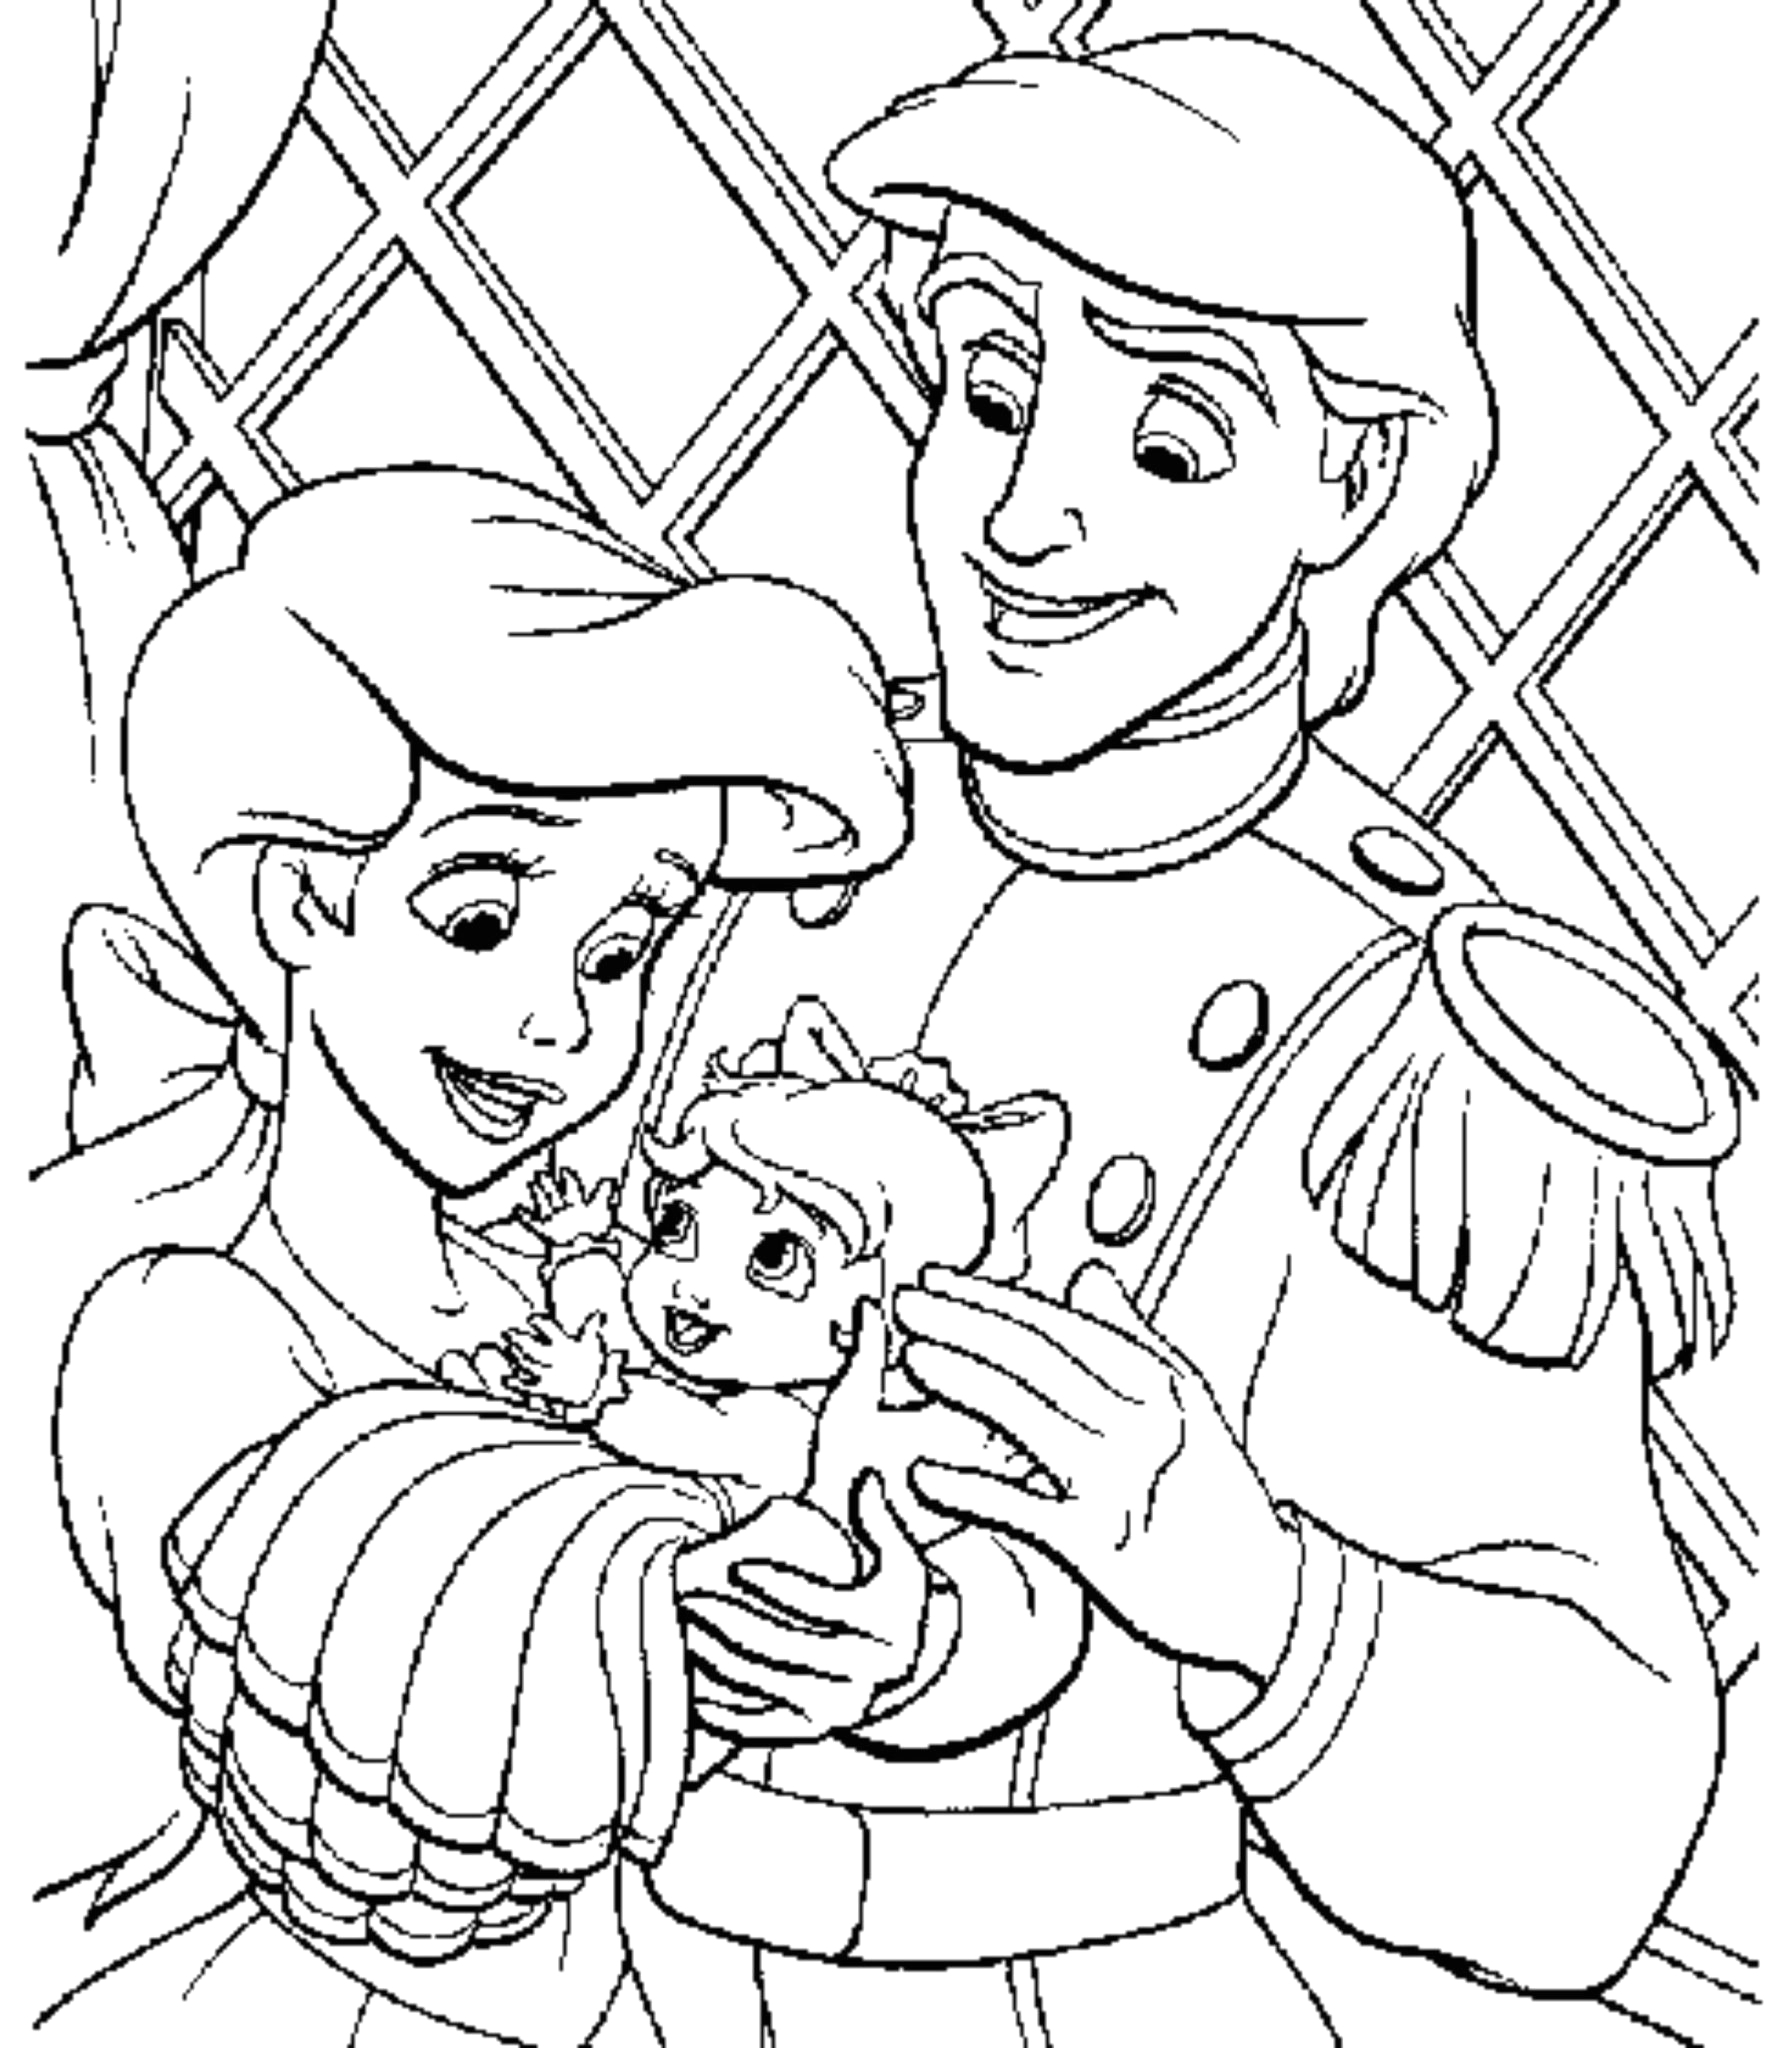 Disney Princess Coloring Pages to Color Online Print & Download Princess Coloring Pages Support the